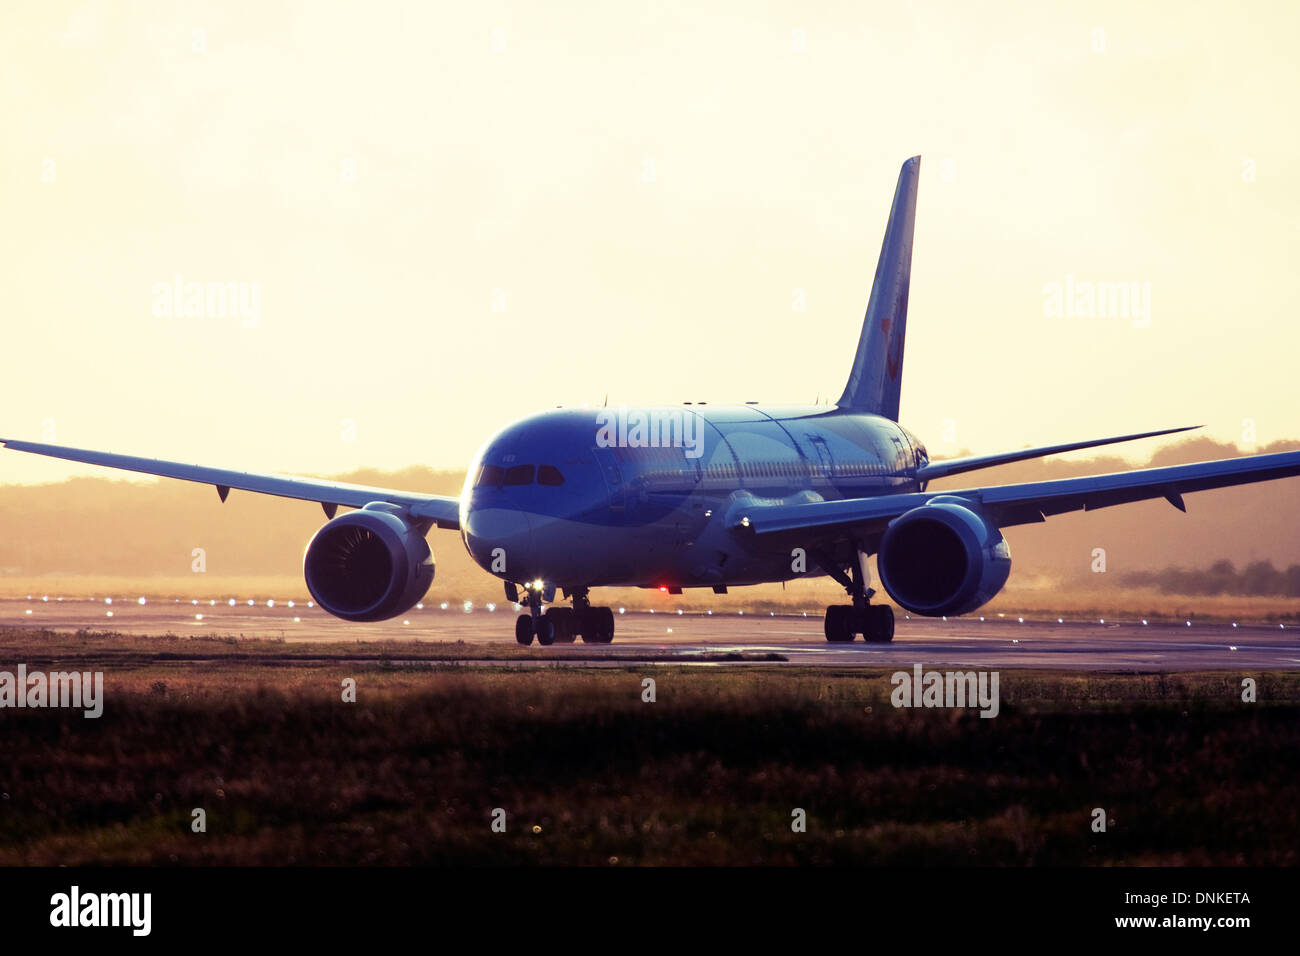 Thomson Airways Boeing 787-8 Dreamliner at London Gatwick Airport, England, UK. - Stock Image